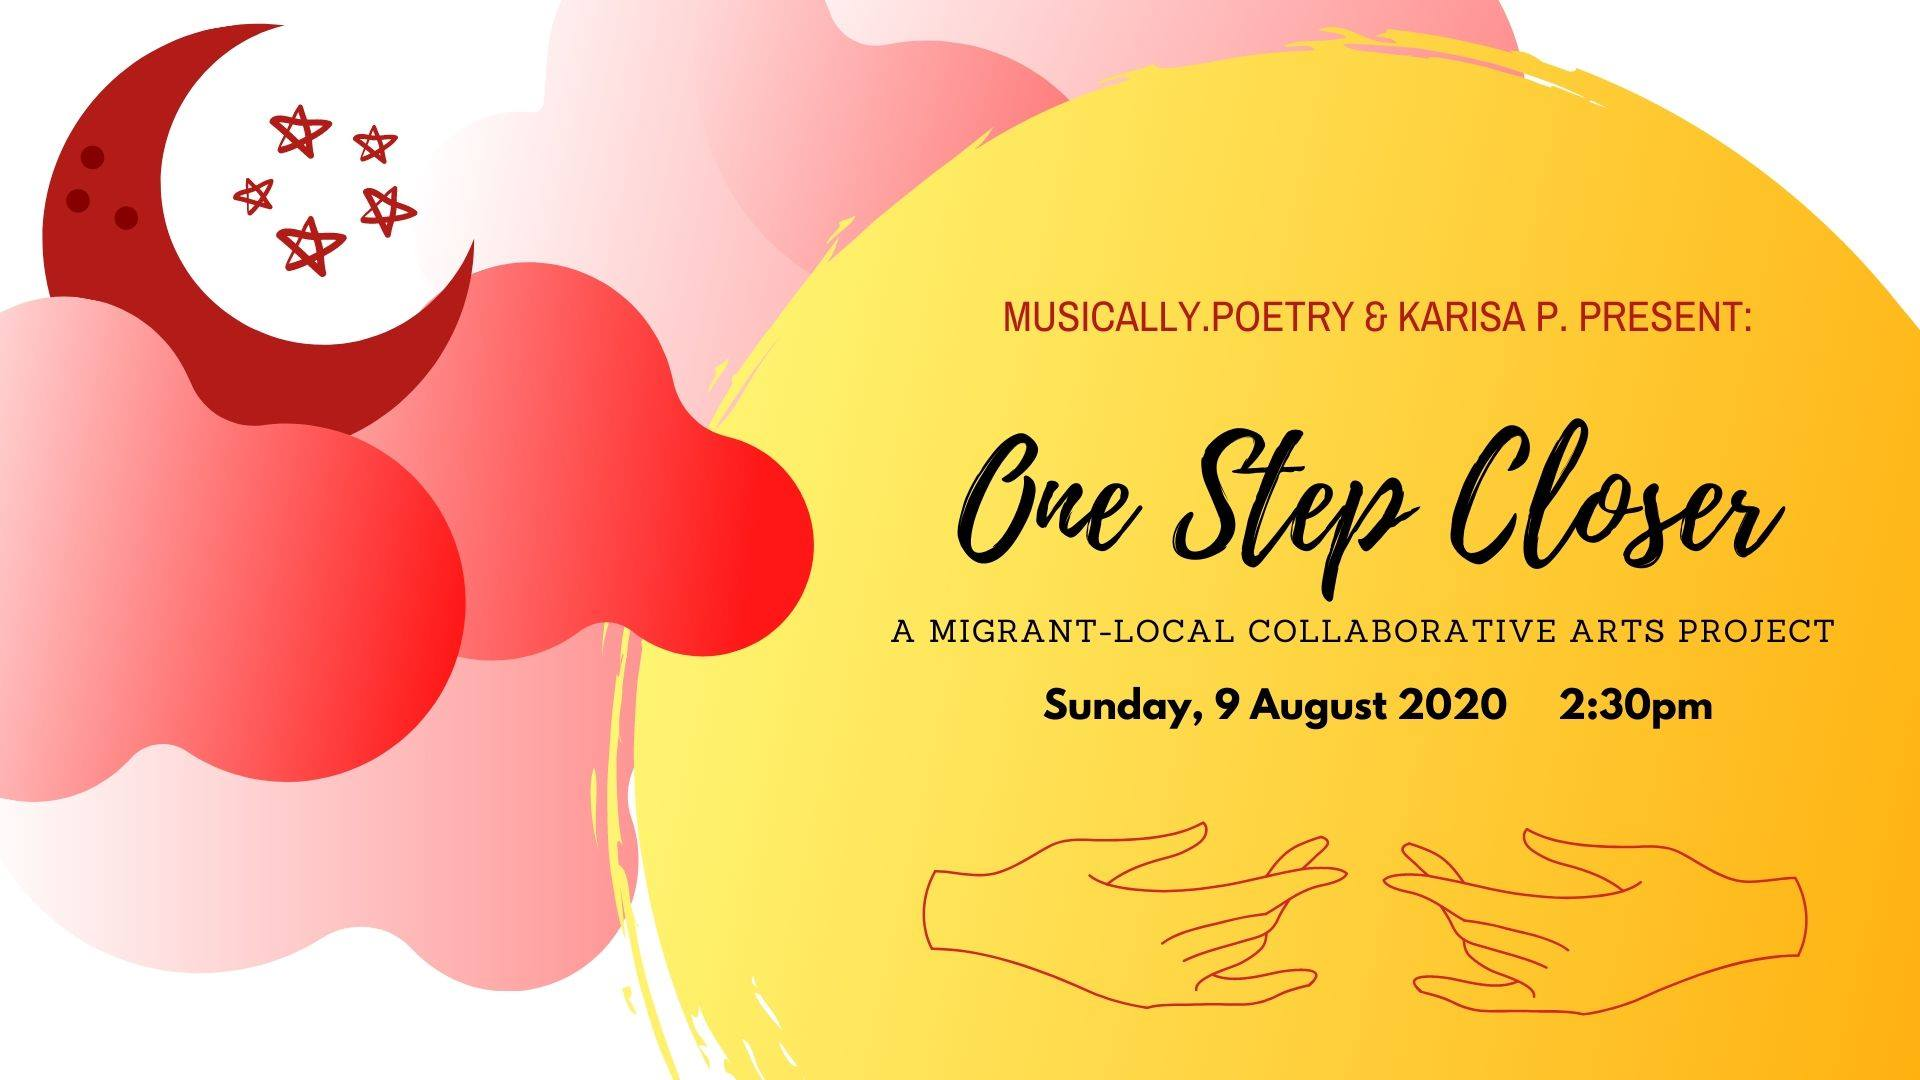 One Step Closer: A Migrant-Local Collaborative Arts project